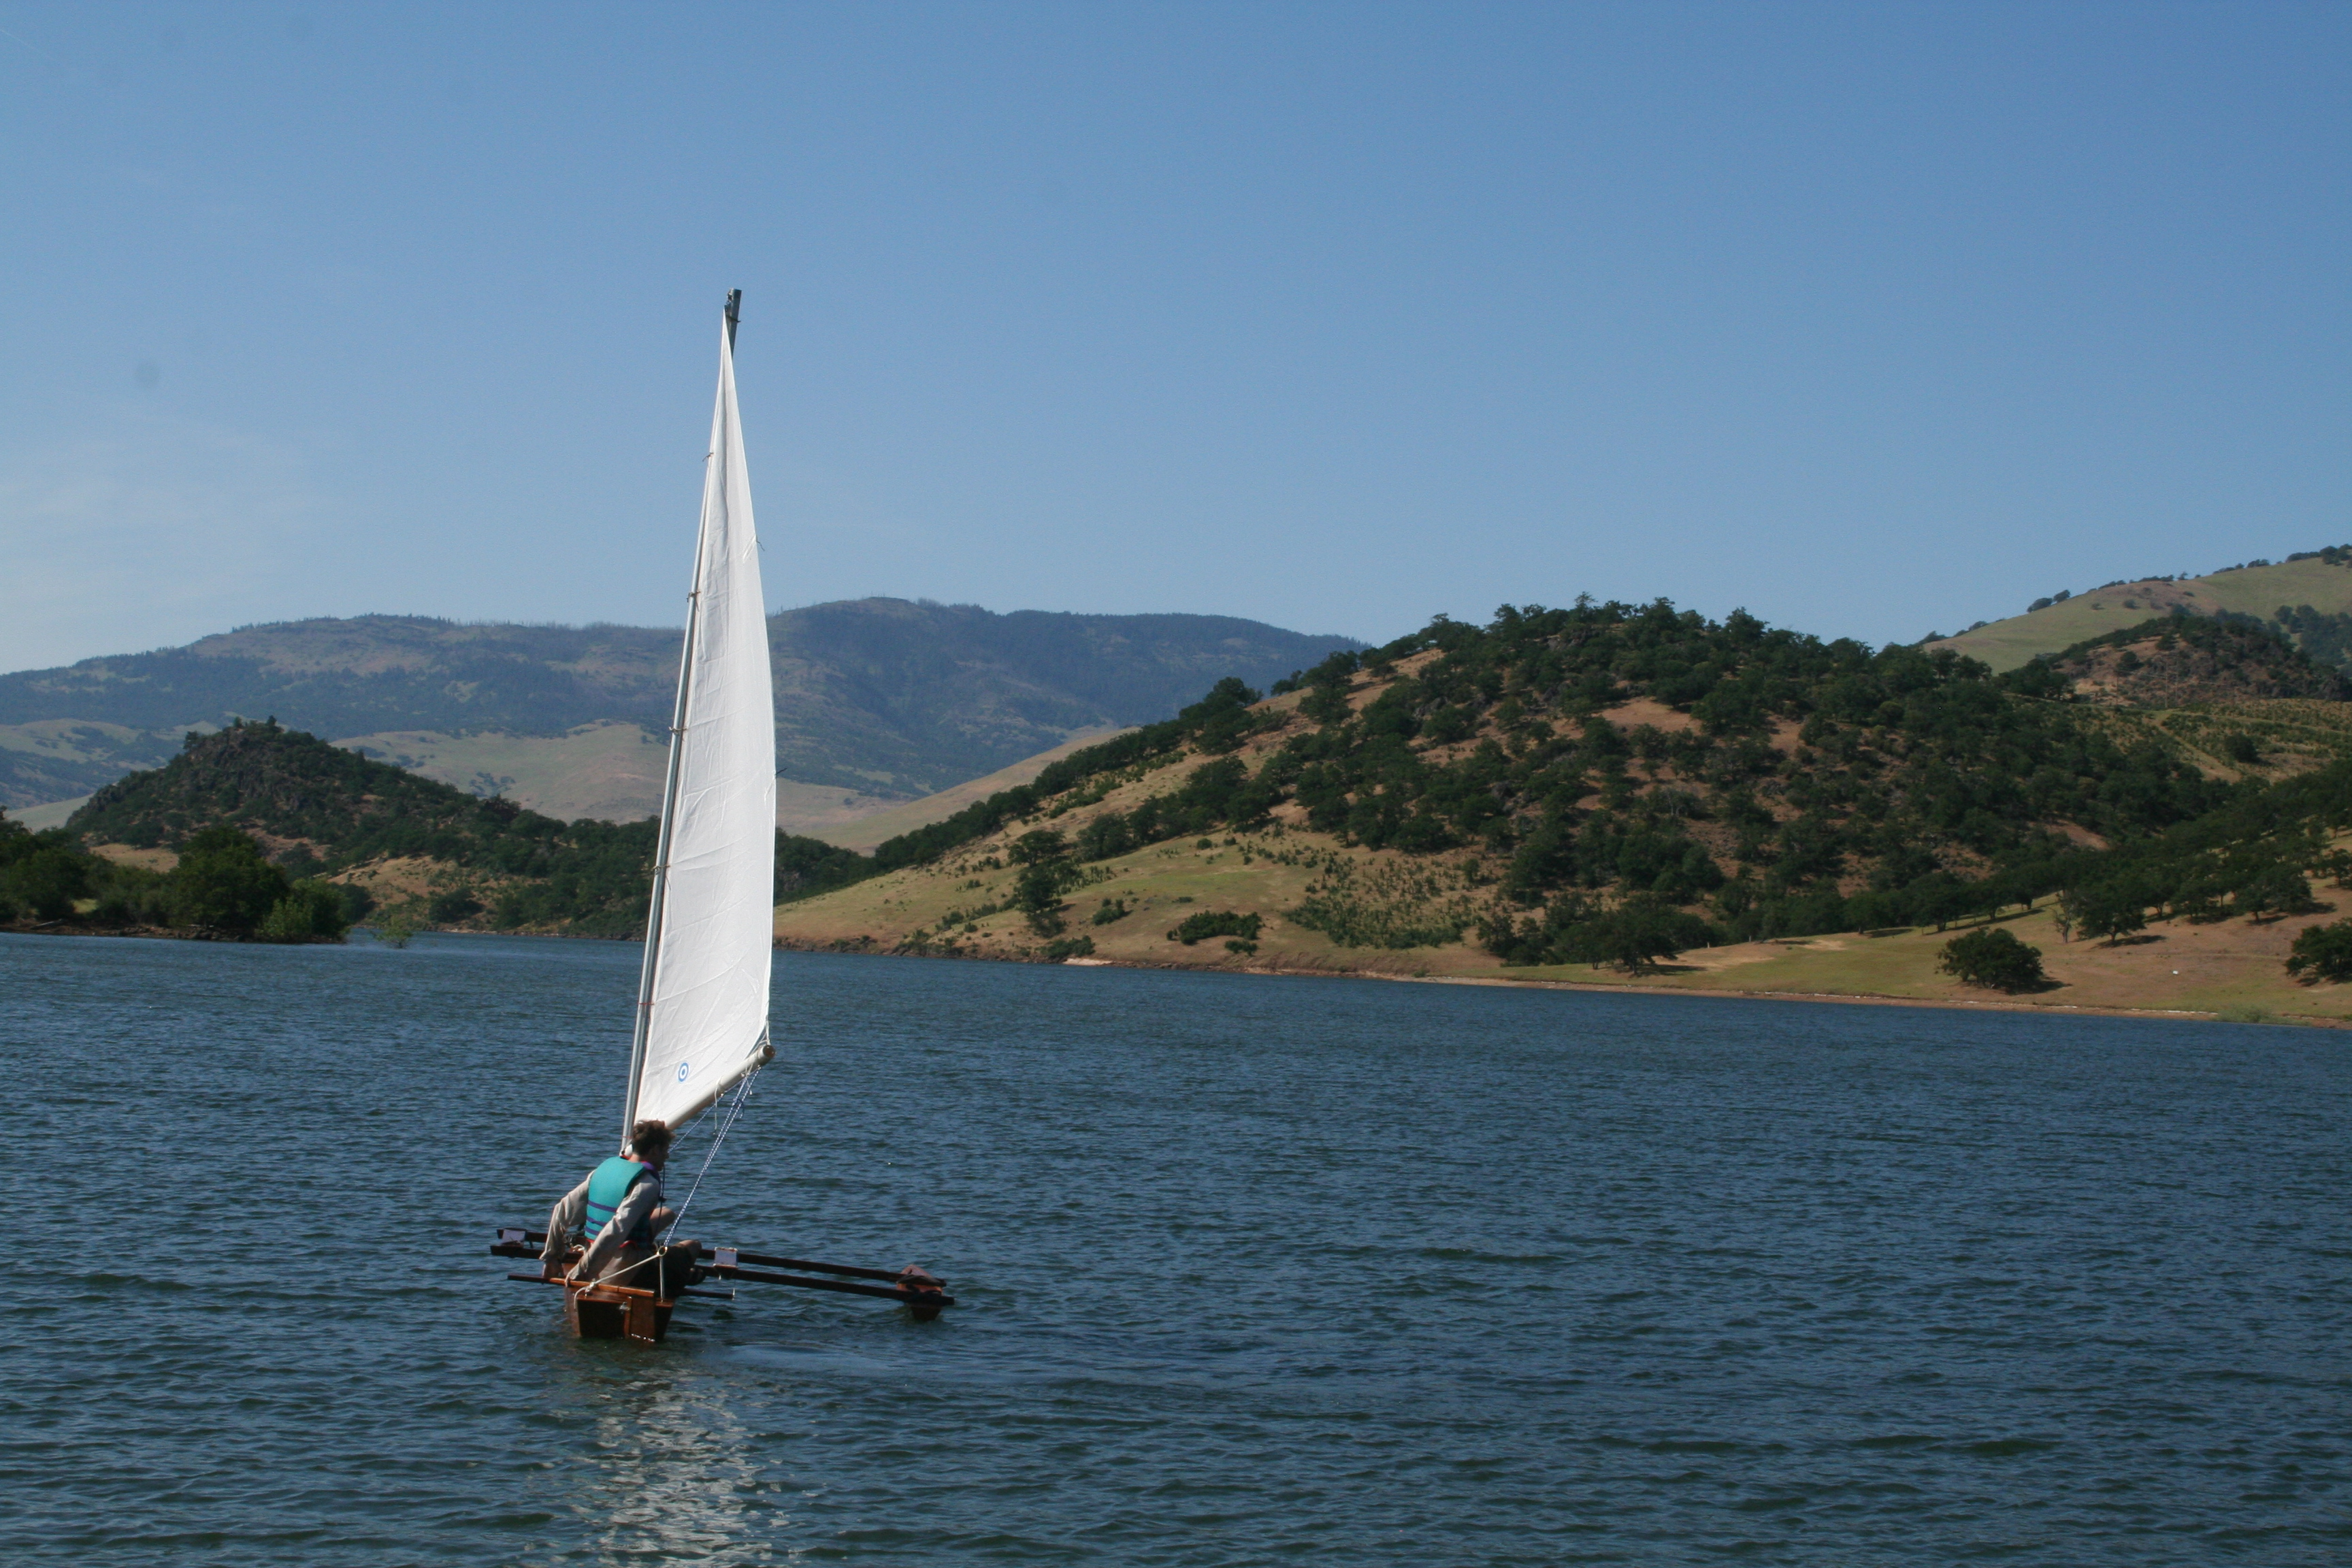 outrigger canoe with freestanding mast